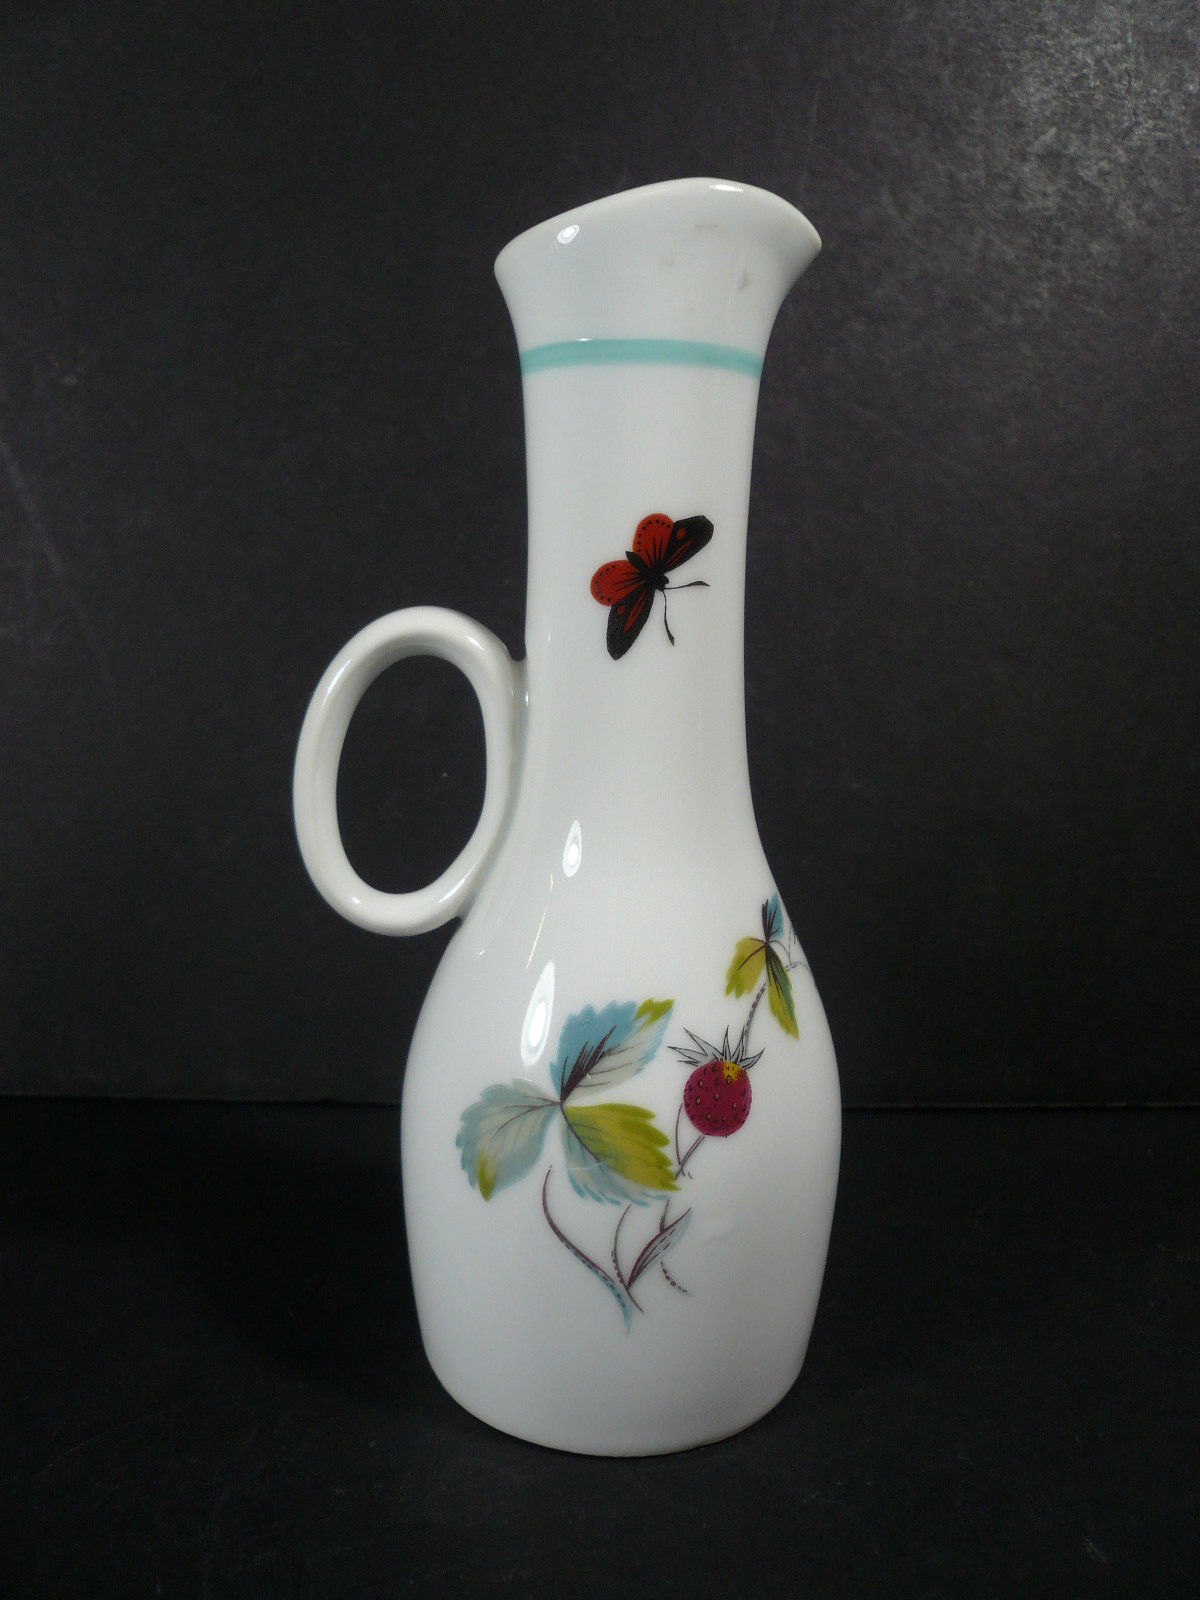 Royal Worcester Strawberry Fair Oil / Vinegar Cruet Bottle Jug - No Stopper